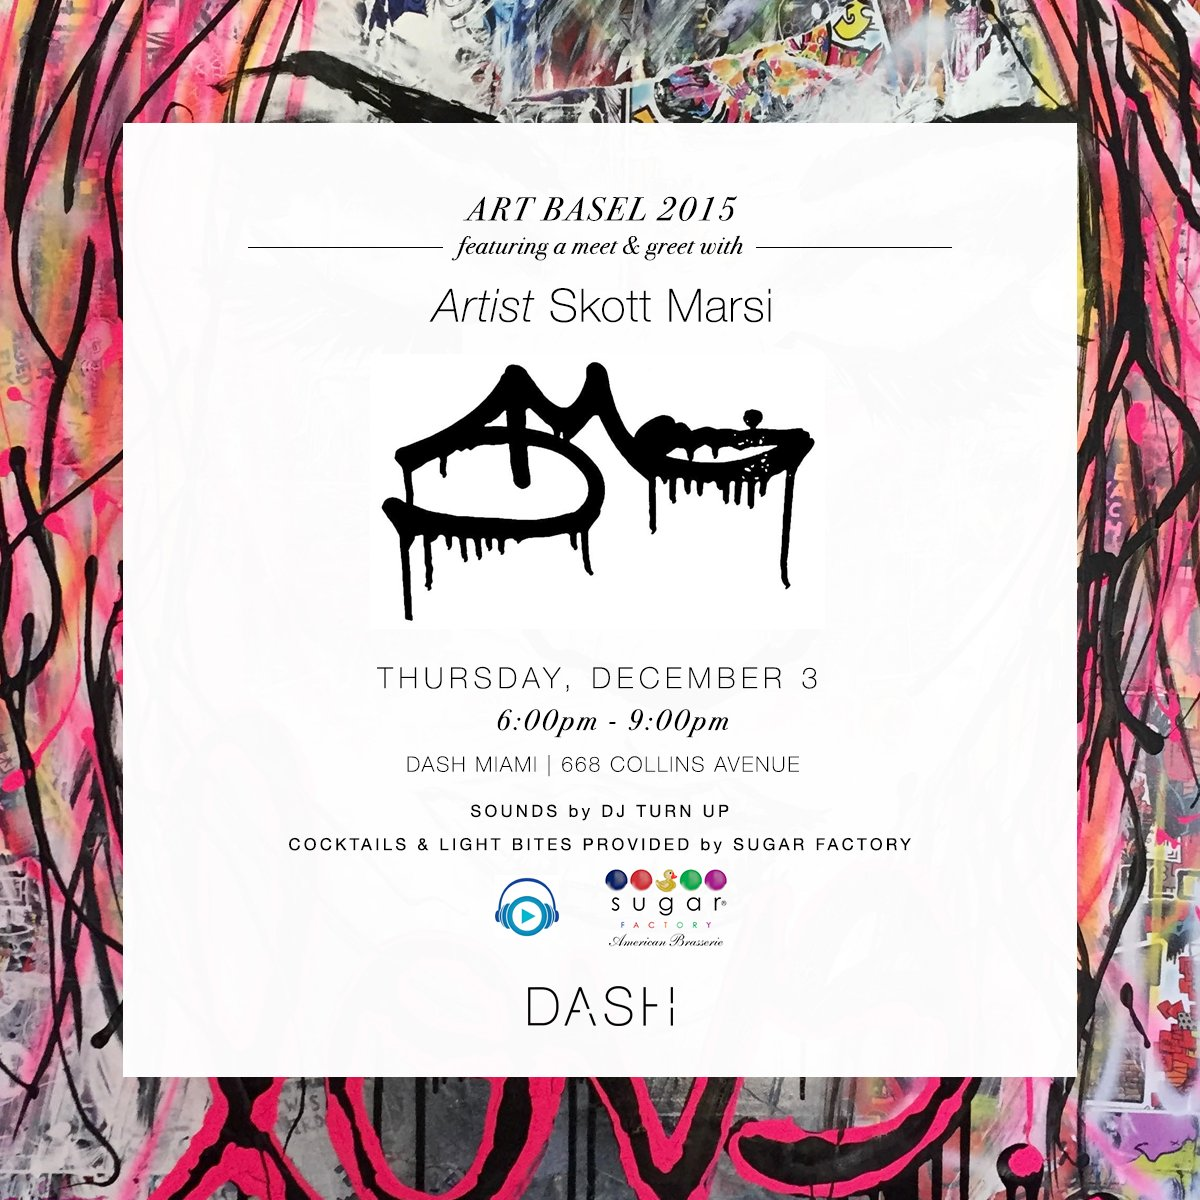 It's Art Basel time! If you're in Miami check out our event at @DASHBoutique with @skottmarsi and @SugarFactory! https://t.co/YNRfUzGOt5